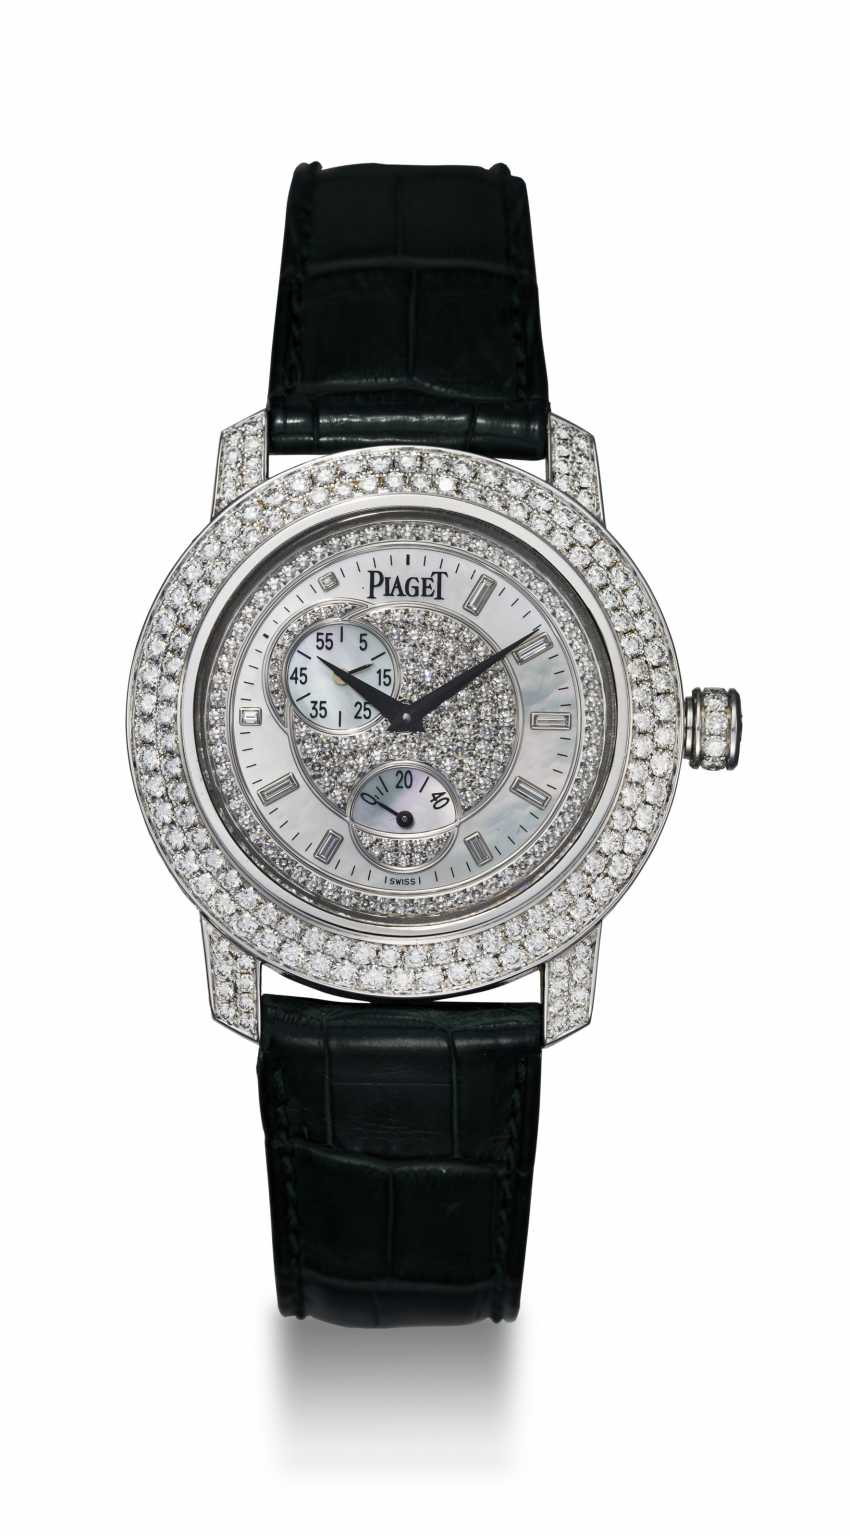 PIAGET, A WHITE GOLD DIAMOND-SET SHEIKA AUTOMATIC WRISTWATCH - photo 3